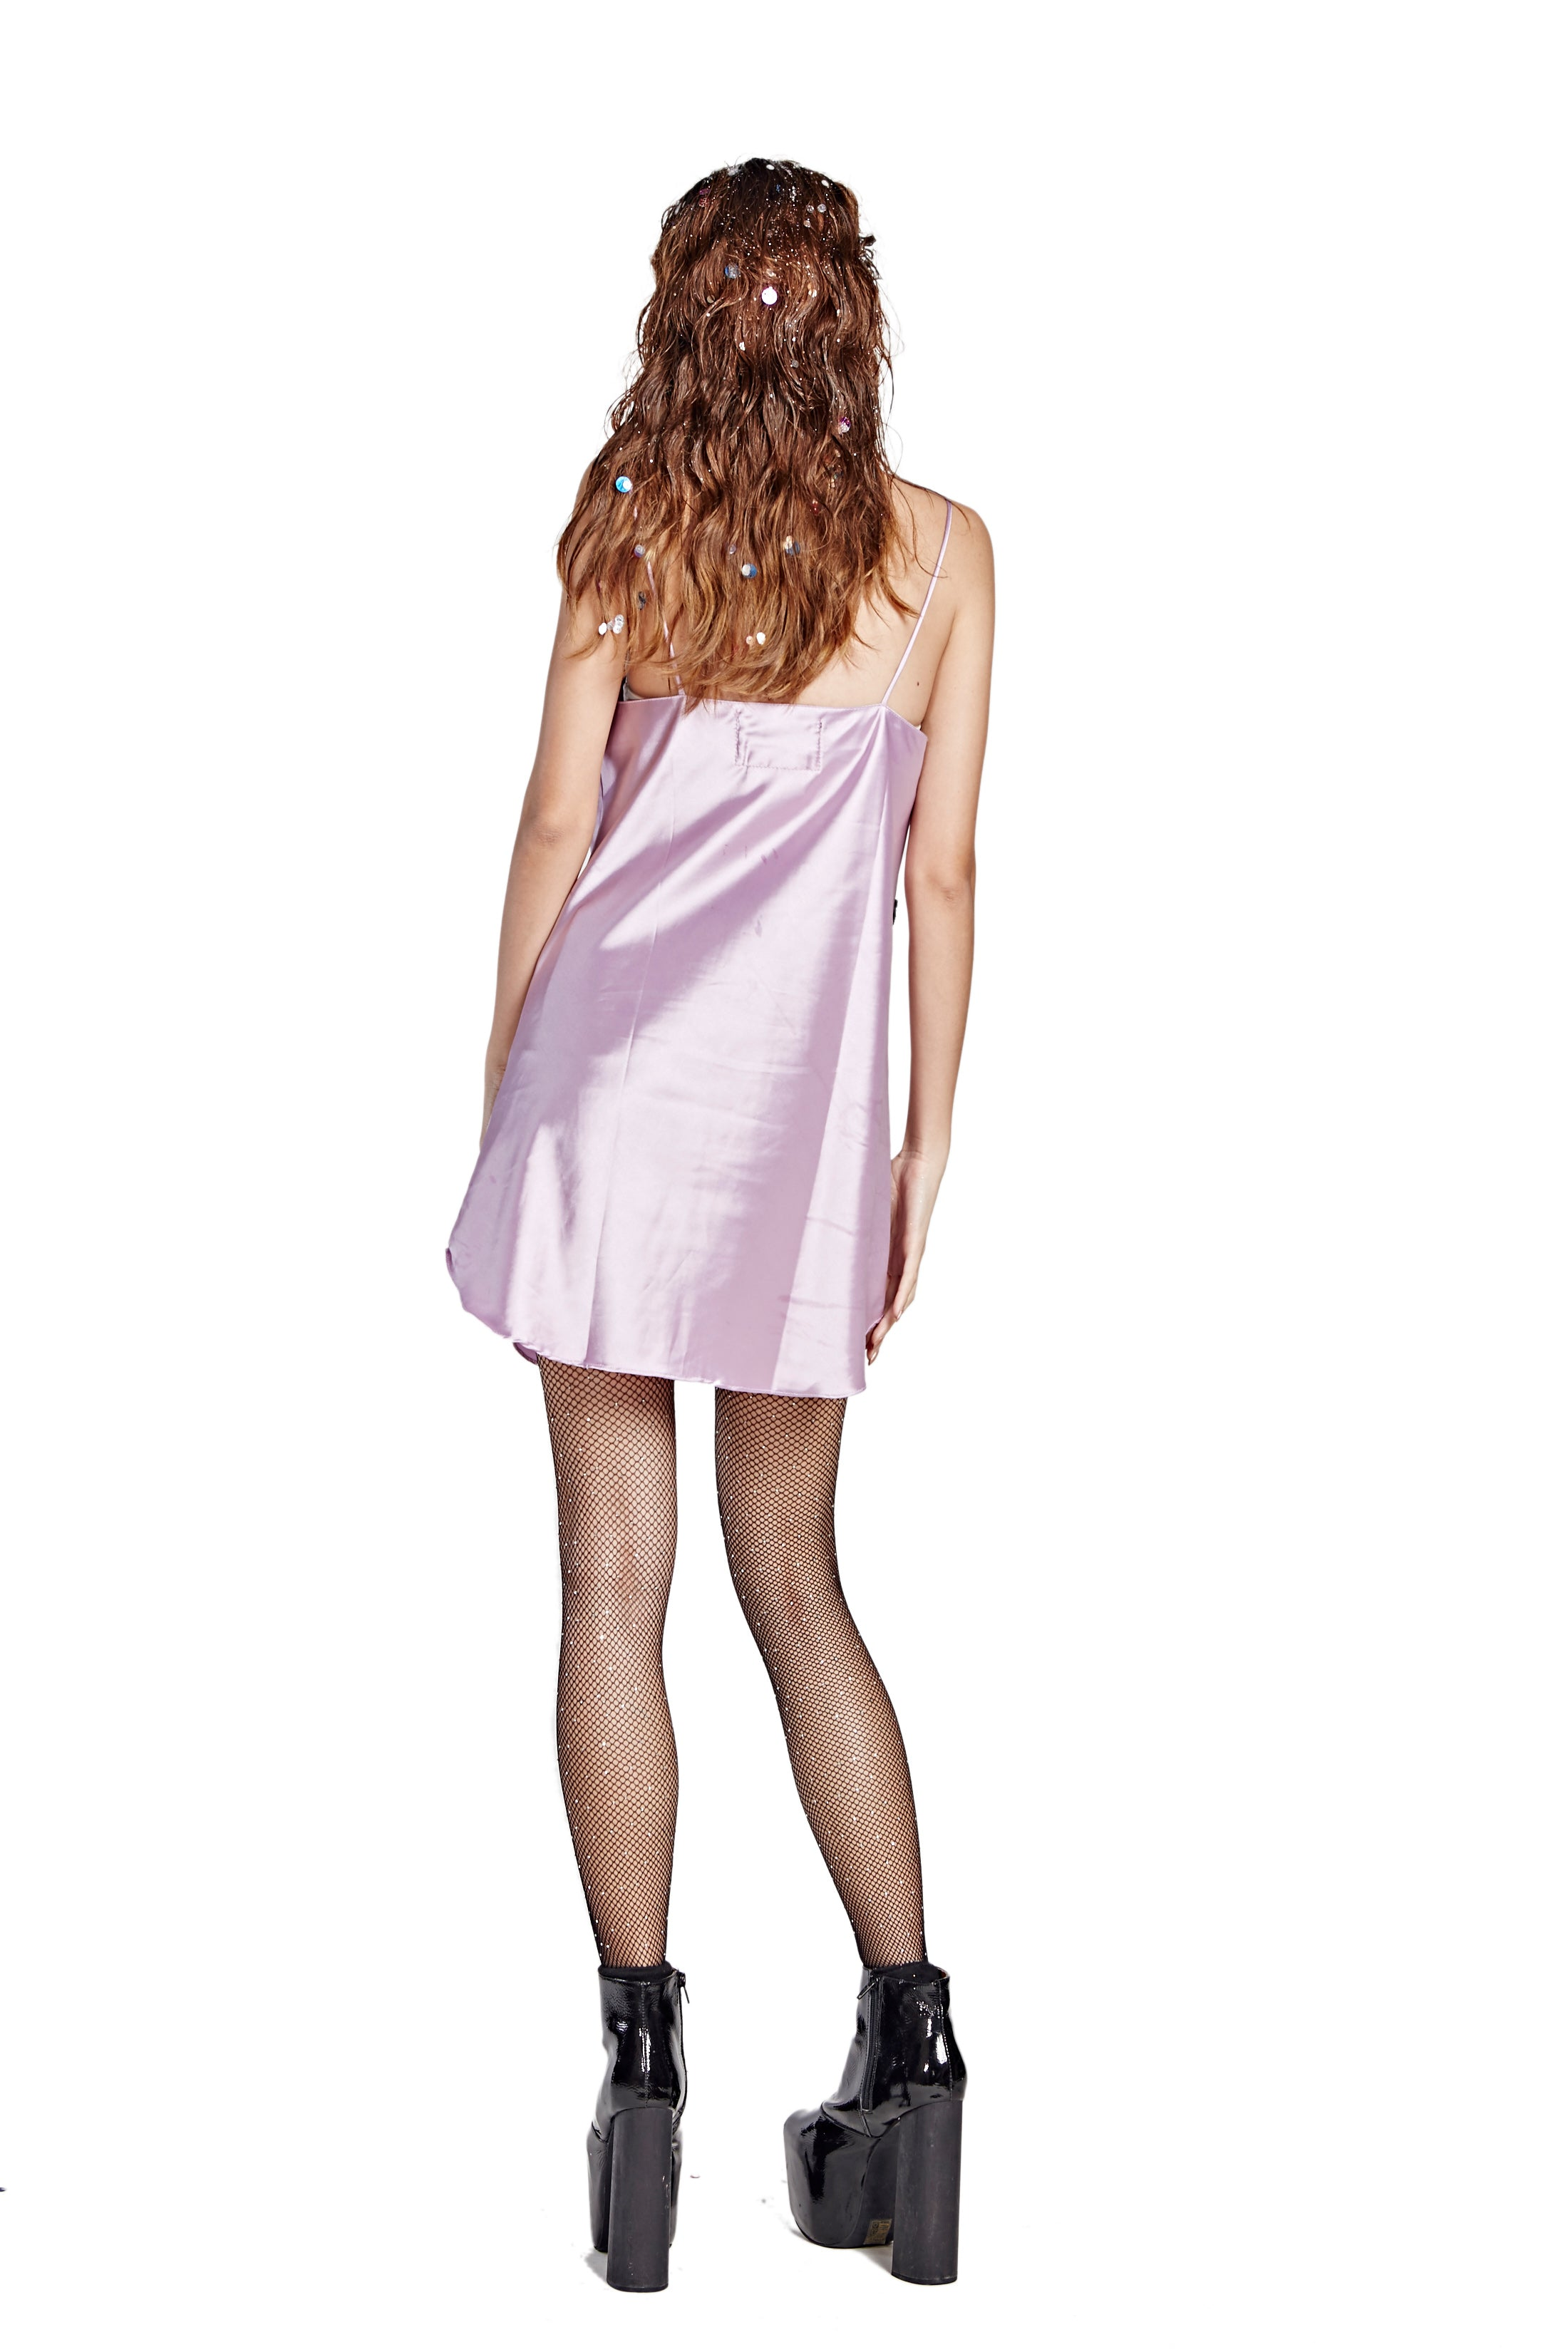 Sleep With Me Night Gown - Pink